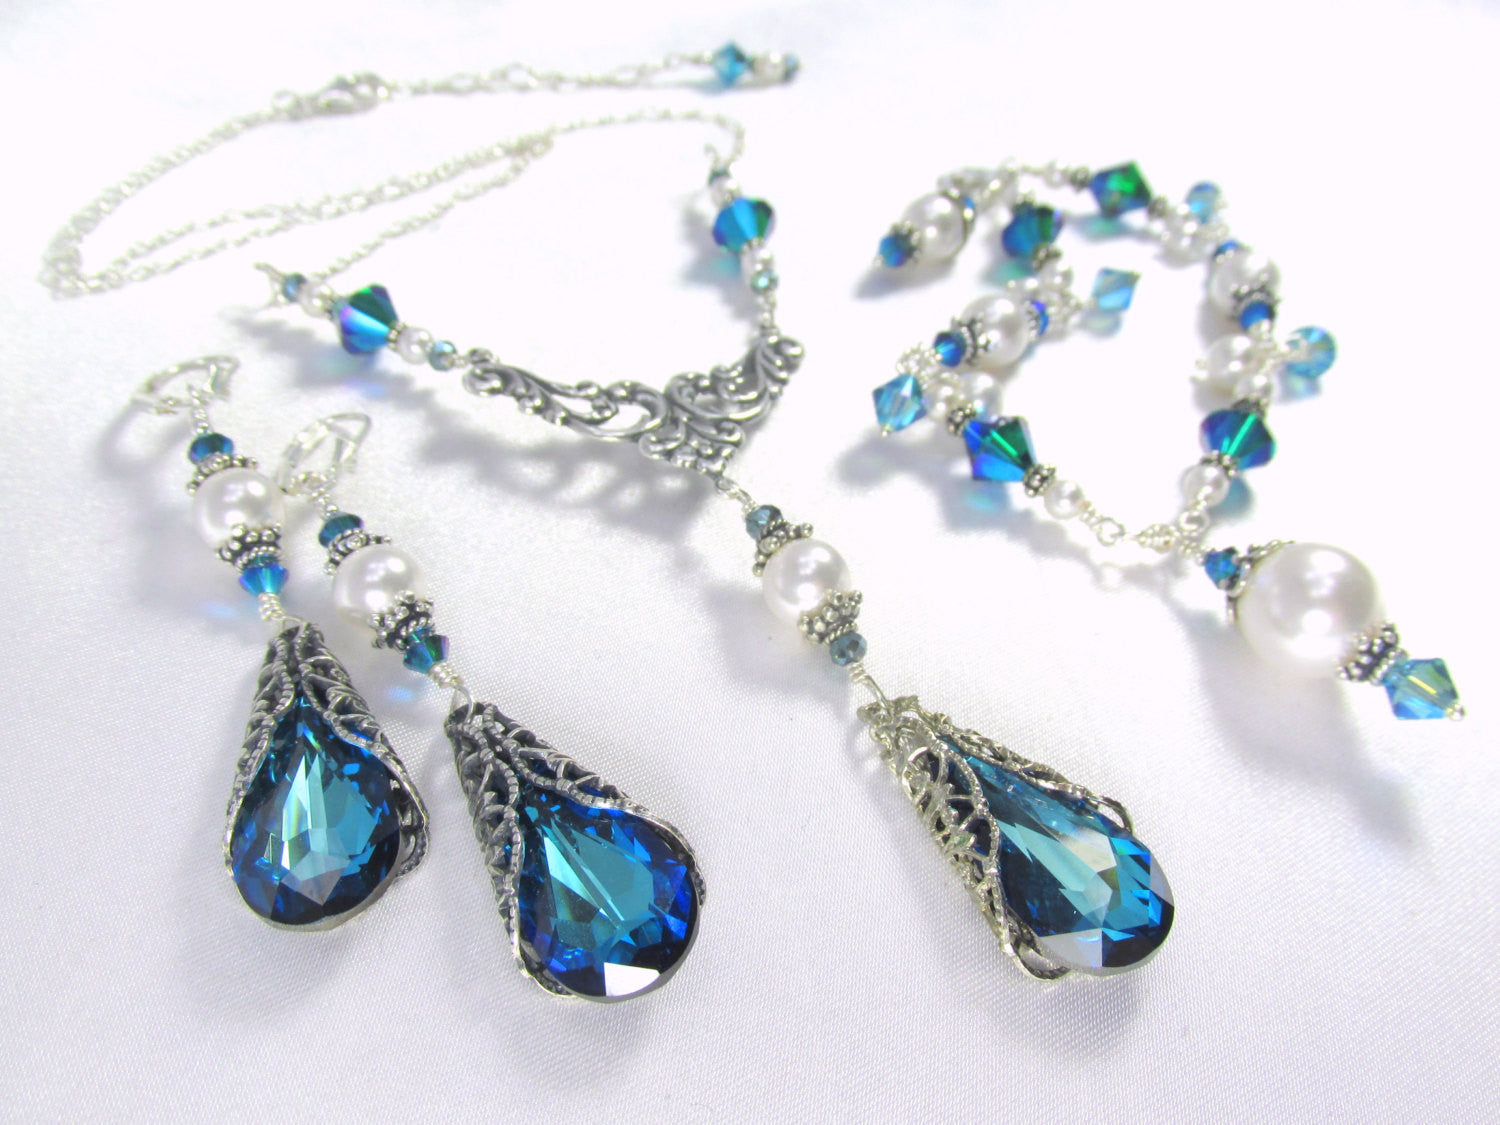 Statement Necklace with Filigree Wrapped Swarovski Bermuda Blue Turquoise Teardrop, Swarovski Pearls and Sterling Silver Chain - Odyssey Creations